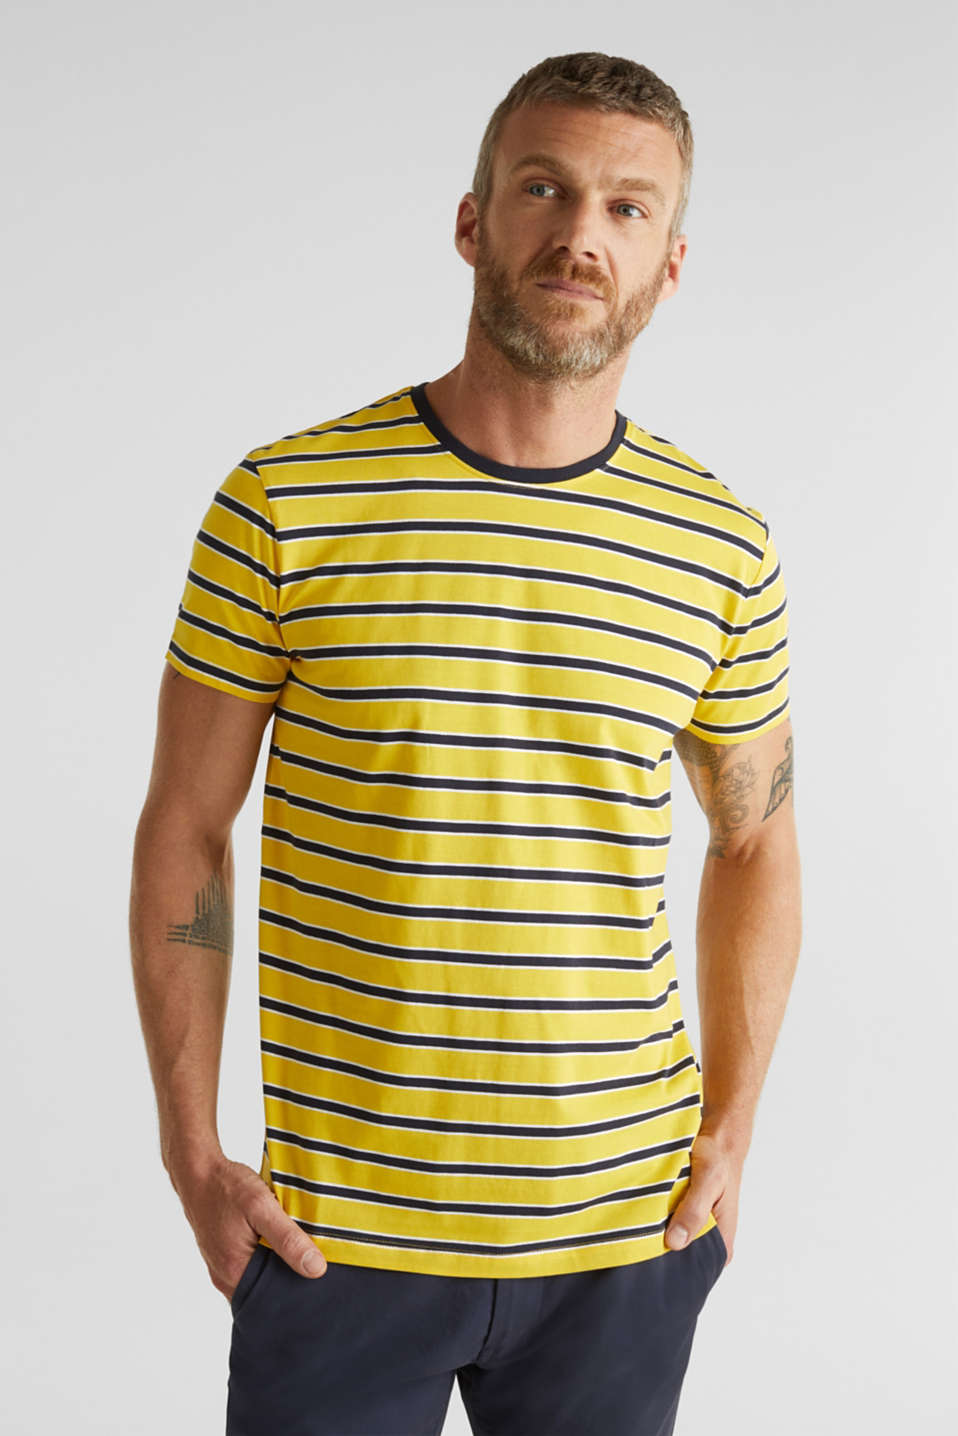 Jersey T-shirt with stripes, 100% cotton, YELLOW 3, detail image number 0